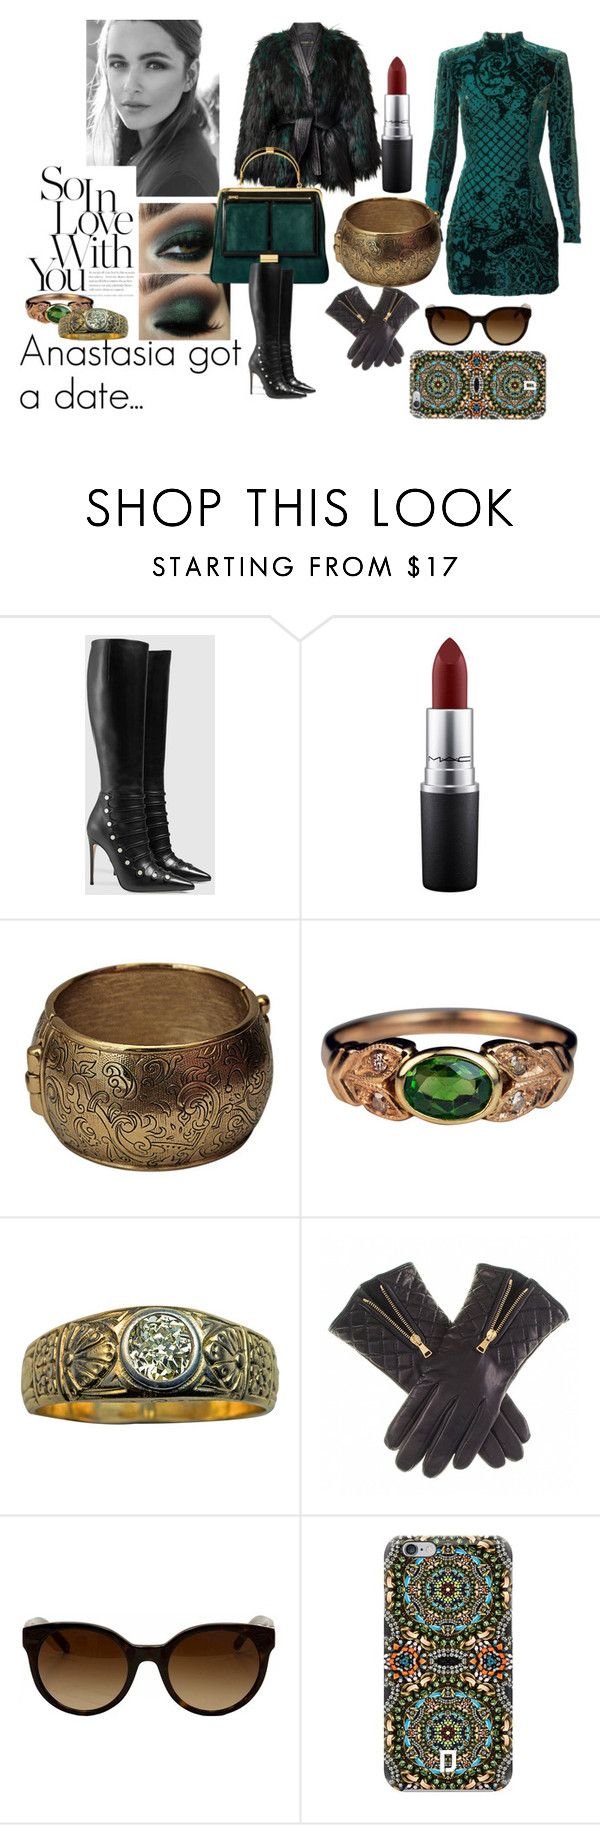 Anastasia in love by supersilent on Polyvore featuring Gucci, Yves Saint Laurent, DANNIJO, Tory Burch, MAC Cosmetics, Balmain, modern, women's clothing, women's fashion and women